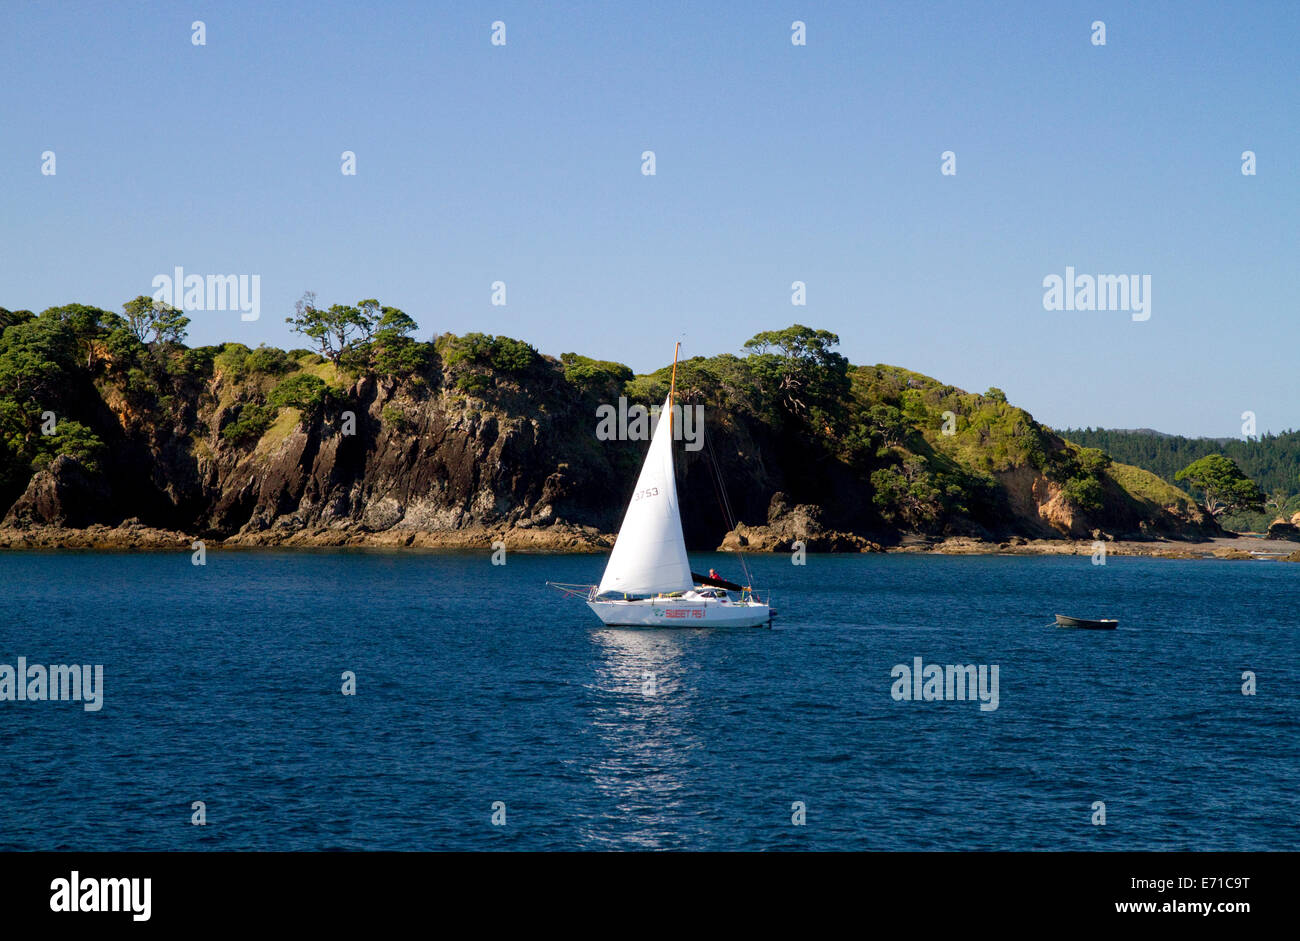 Sail boat in the Bay of Islands, North Island, New Zealand. - Stock Image